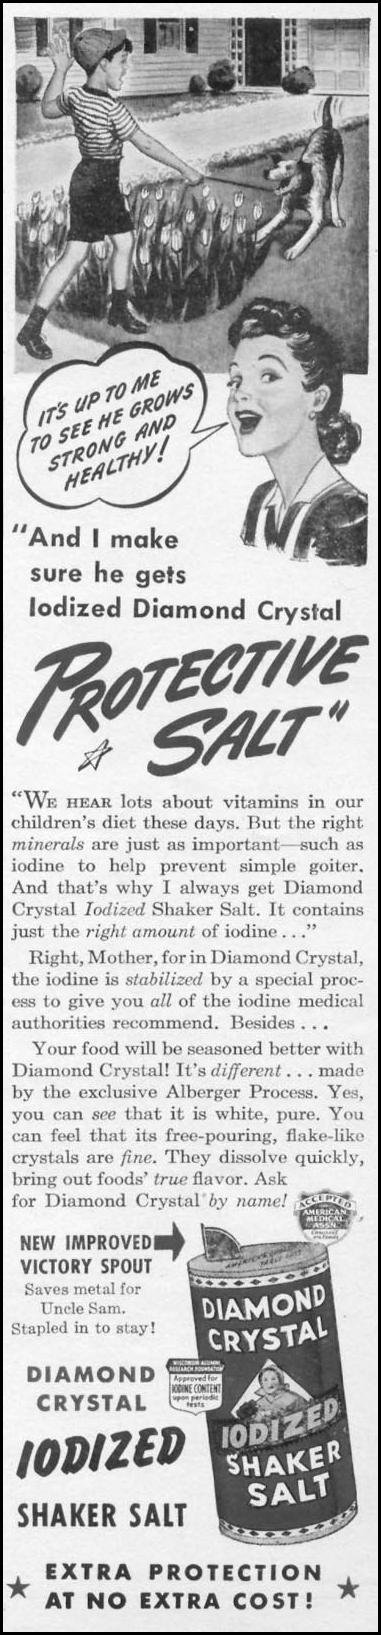 DIAMOND CRYSTAL IODIZED SHAKER SALT WOMAN'S DAY 05/01/1943 p. 16